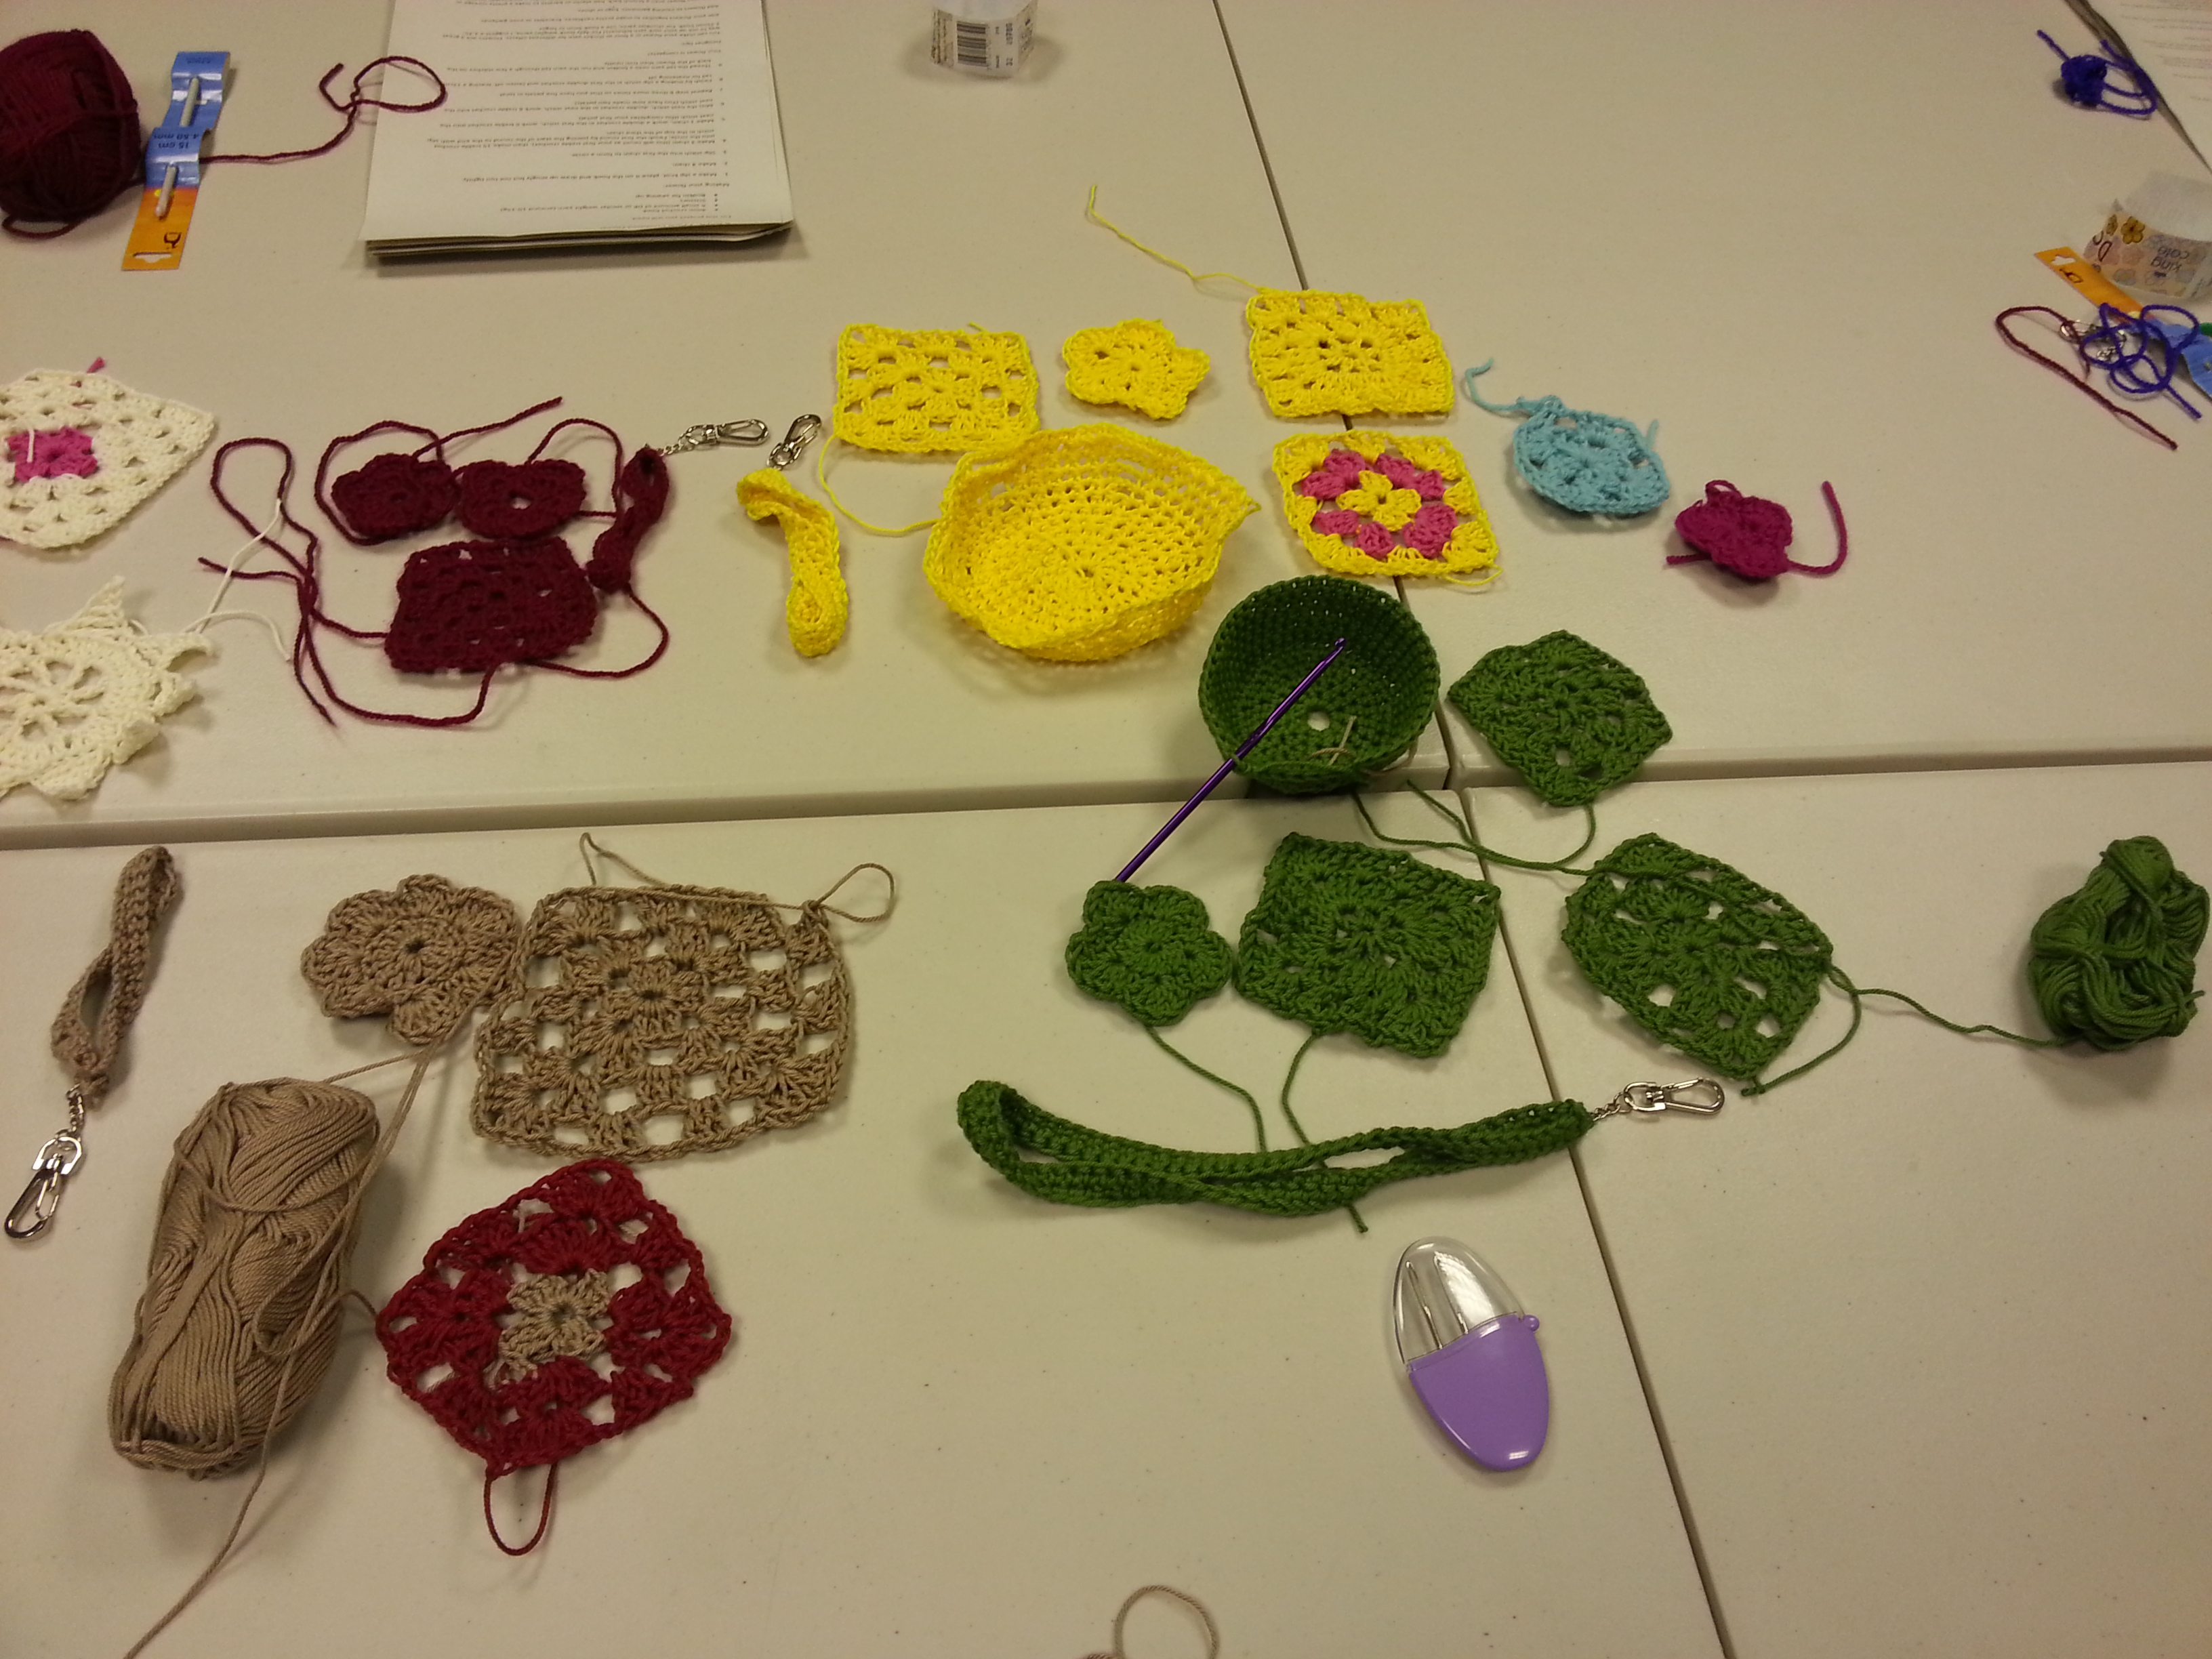 students' work from a beginner's crochet workshop with debbie tomkies of dt craft and design